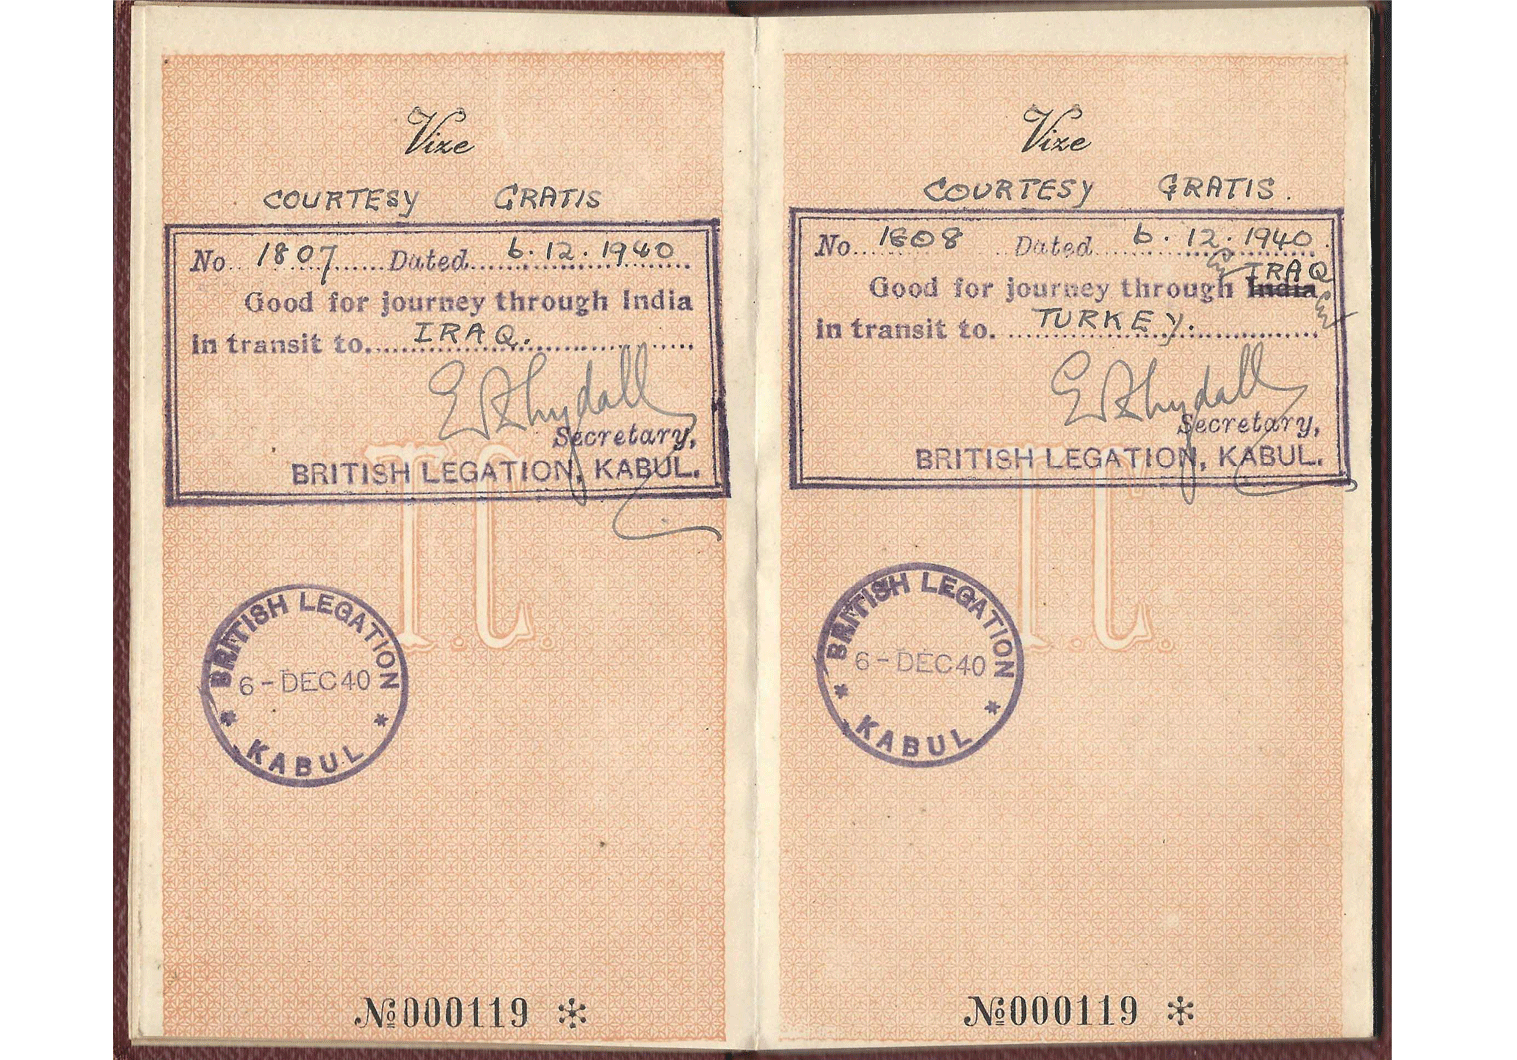 WW2 special passport for Afghanistan.